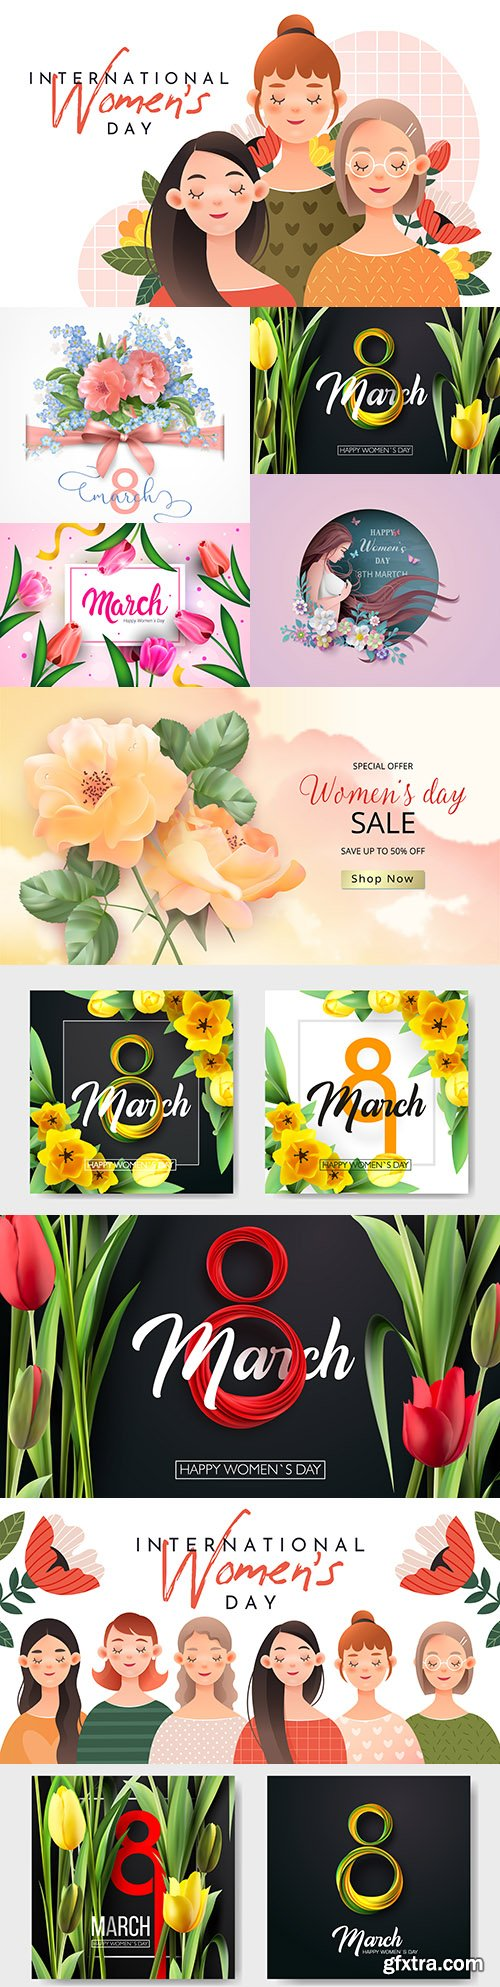 Happy Women's Day March 8 design illustrations 8